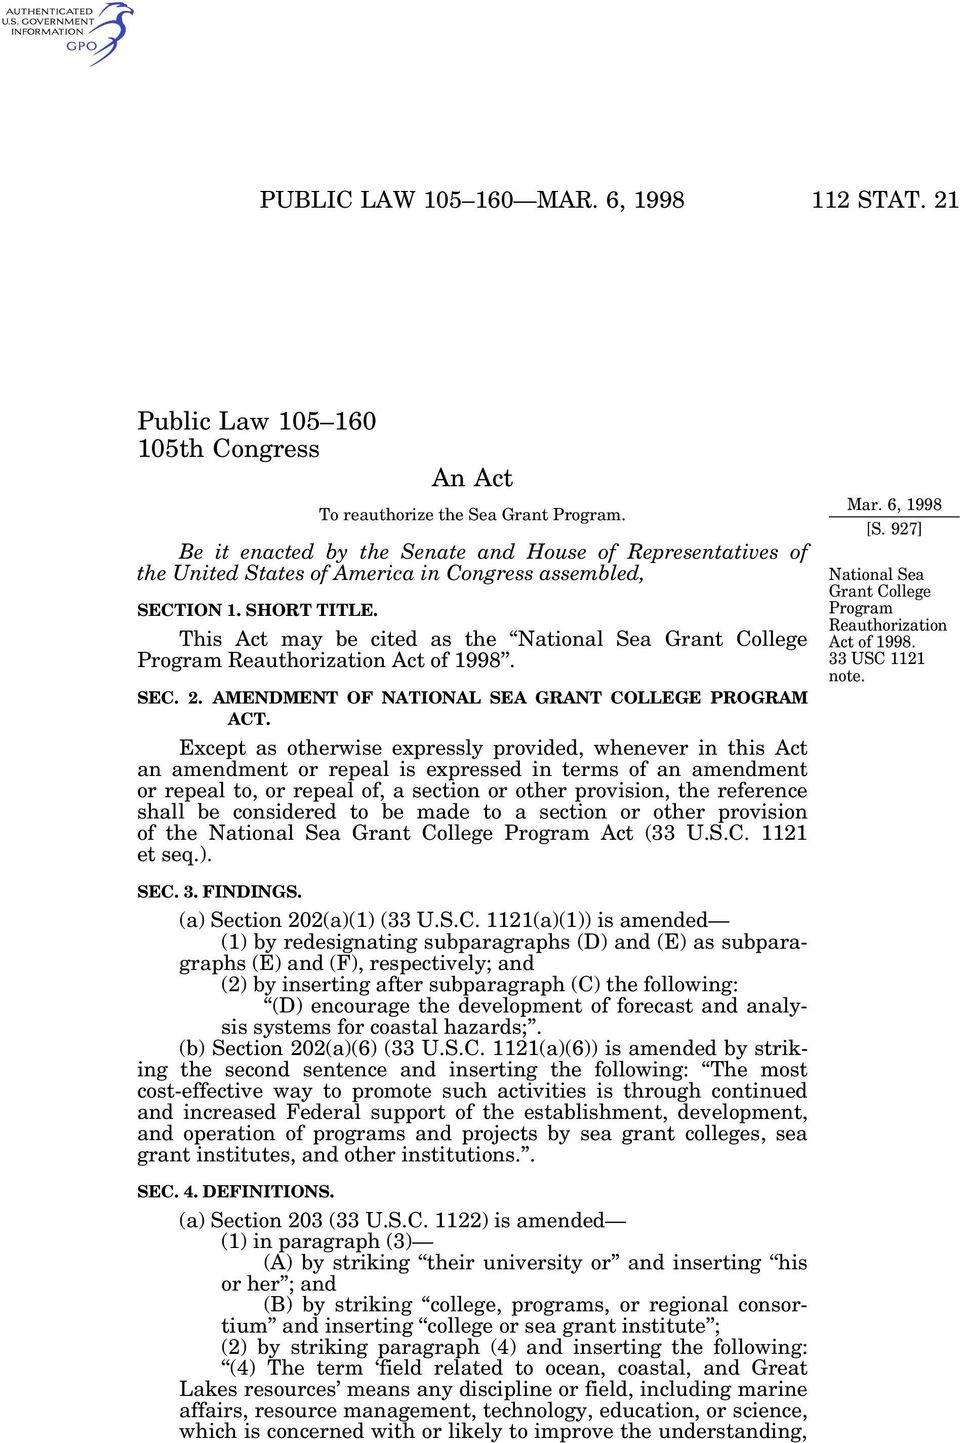 This Act may be cited as the National Sea Grant College Program Reauthorization Act of 1998. SEC. 2. AMENDMENT OF NATIONAL SEA GRANT COLLEGE PROGRAM ACT.